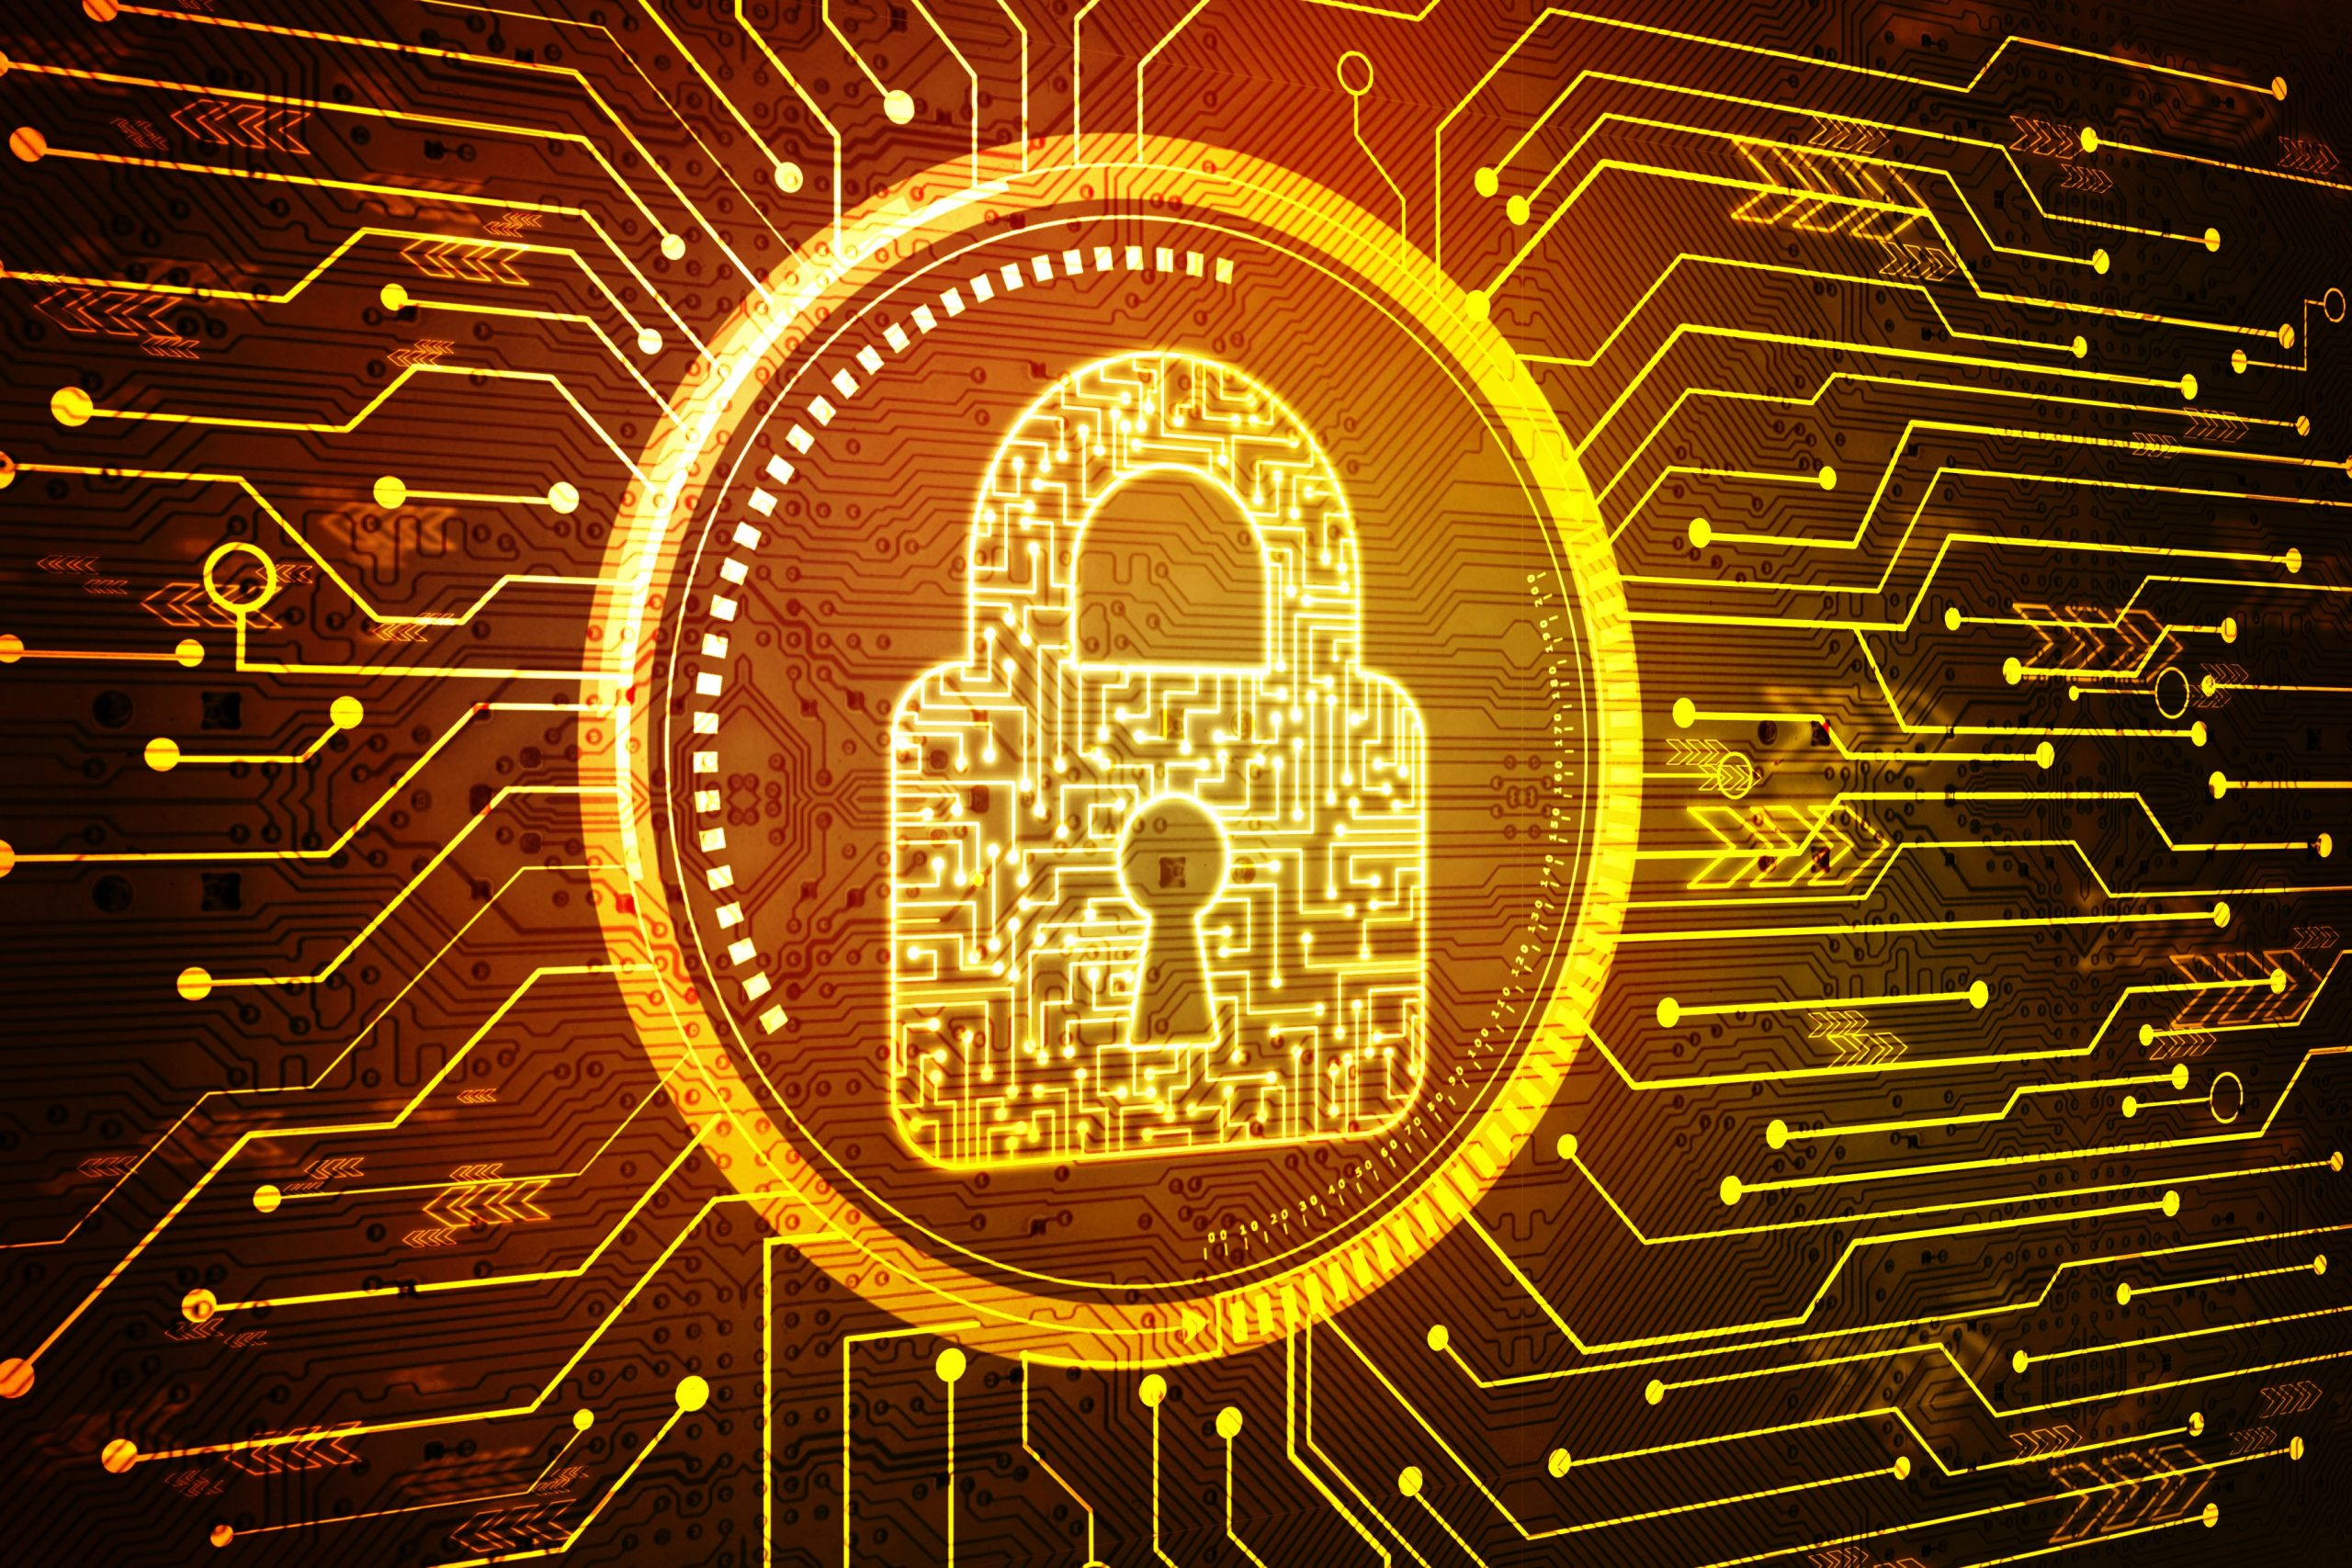 7 Cybersecurity tips for small businesses - especially those with remote workers